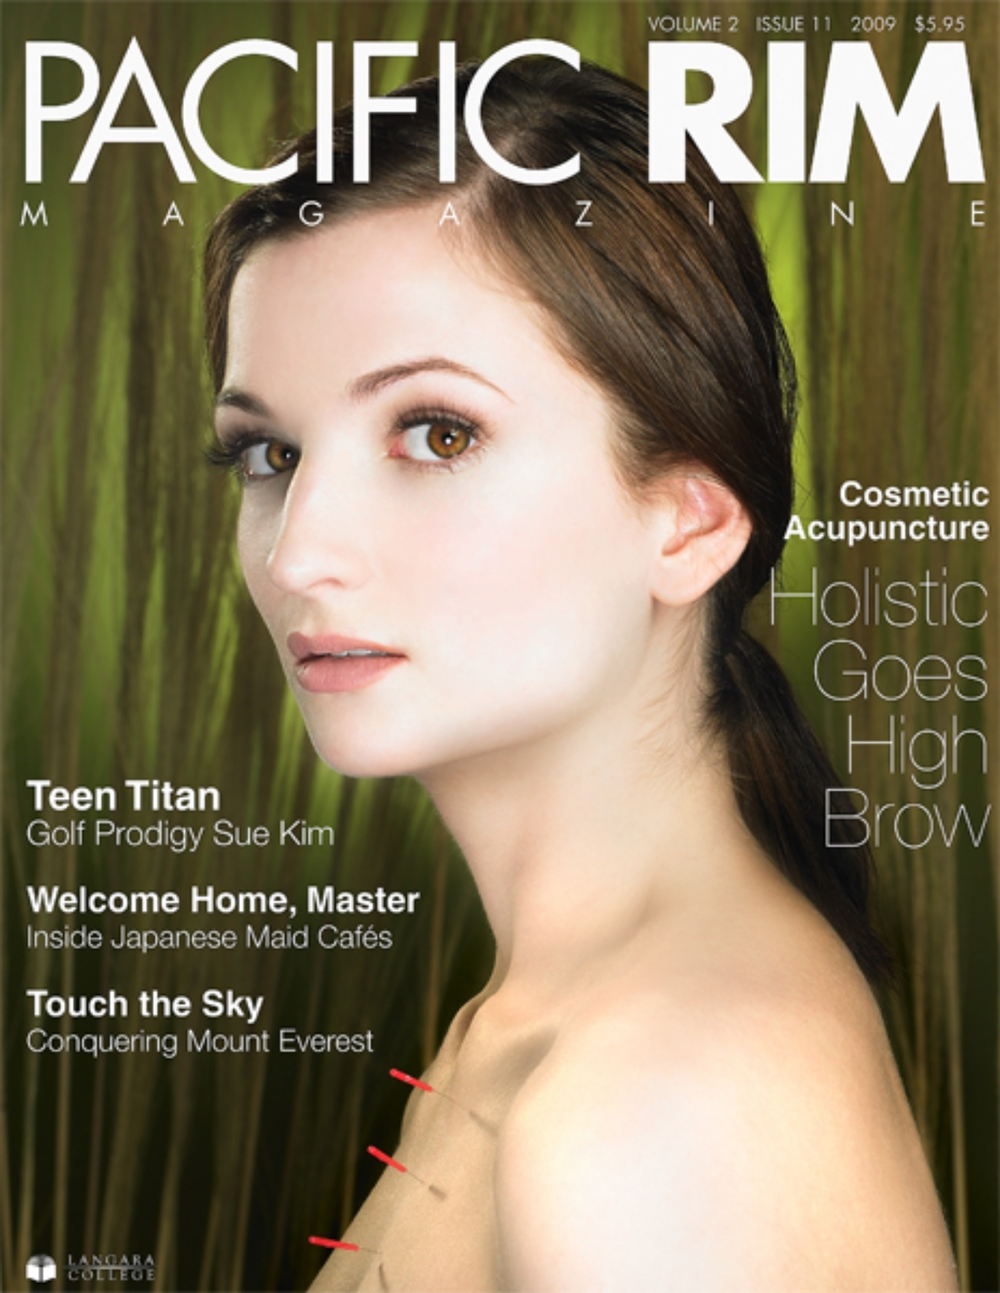 Pacific Rim Magazine Issue No.11